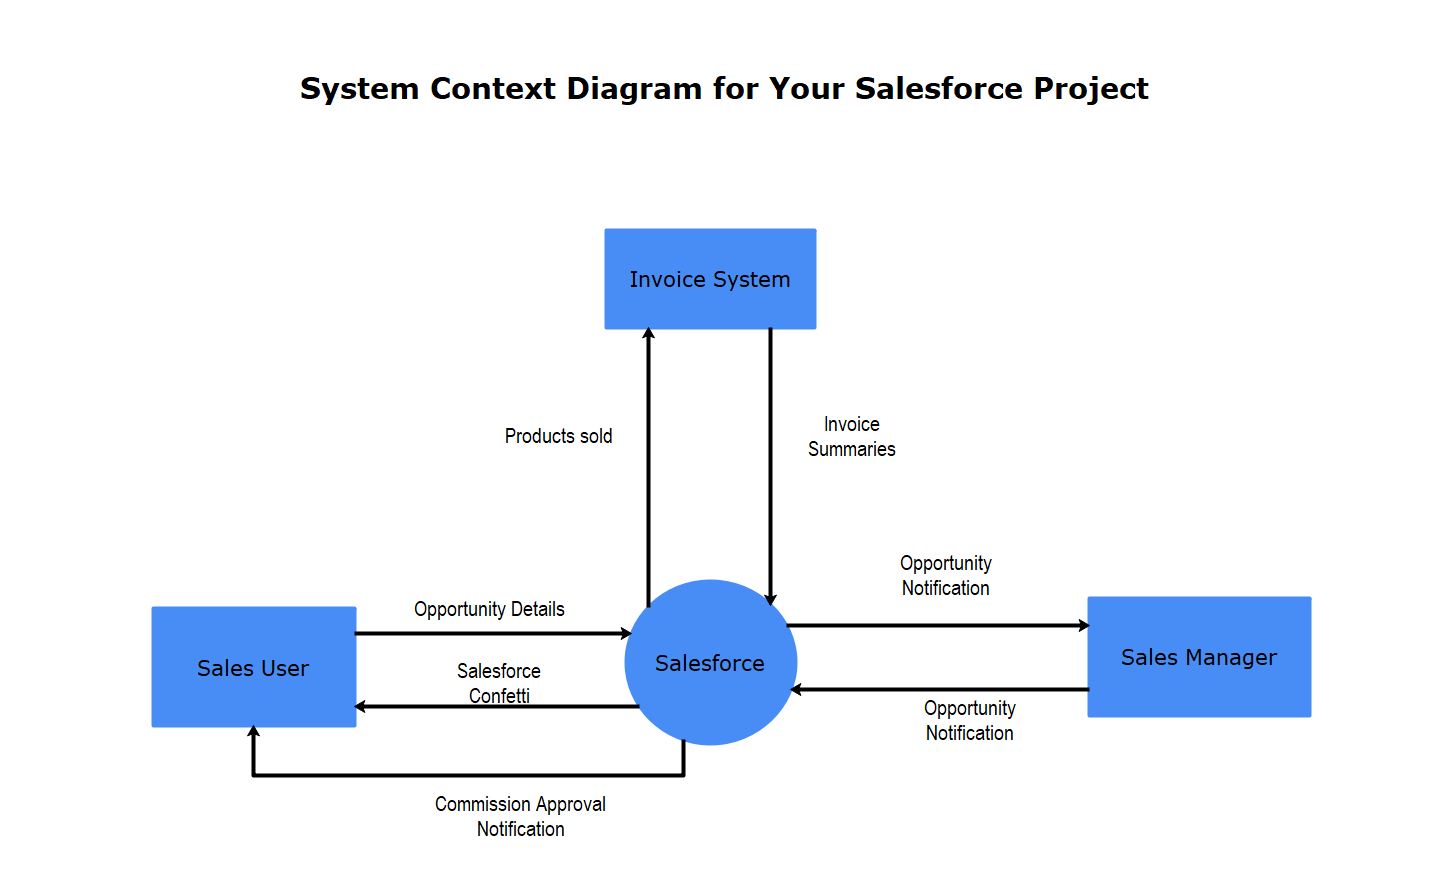 System Context Diagram for Your Salesforce Project